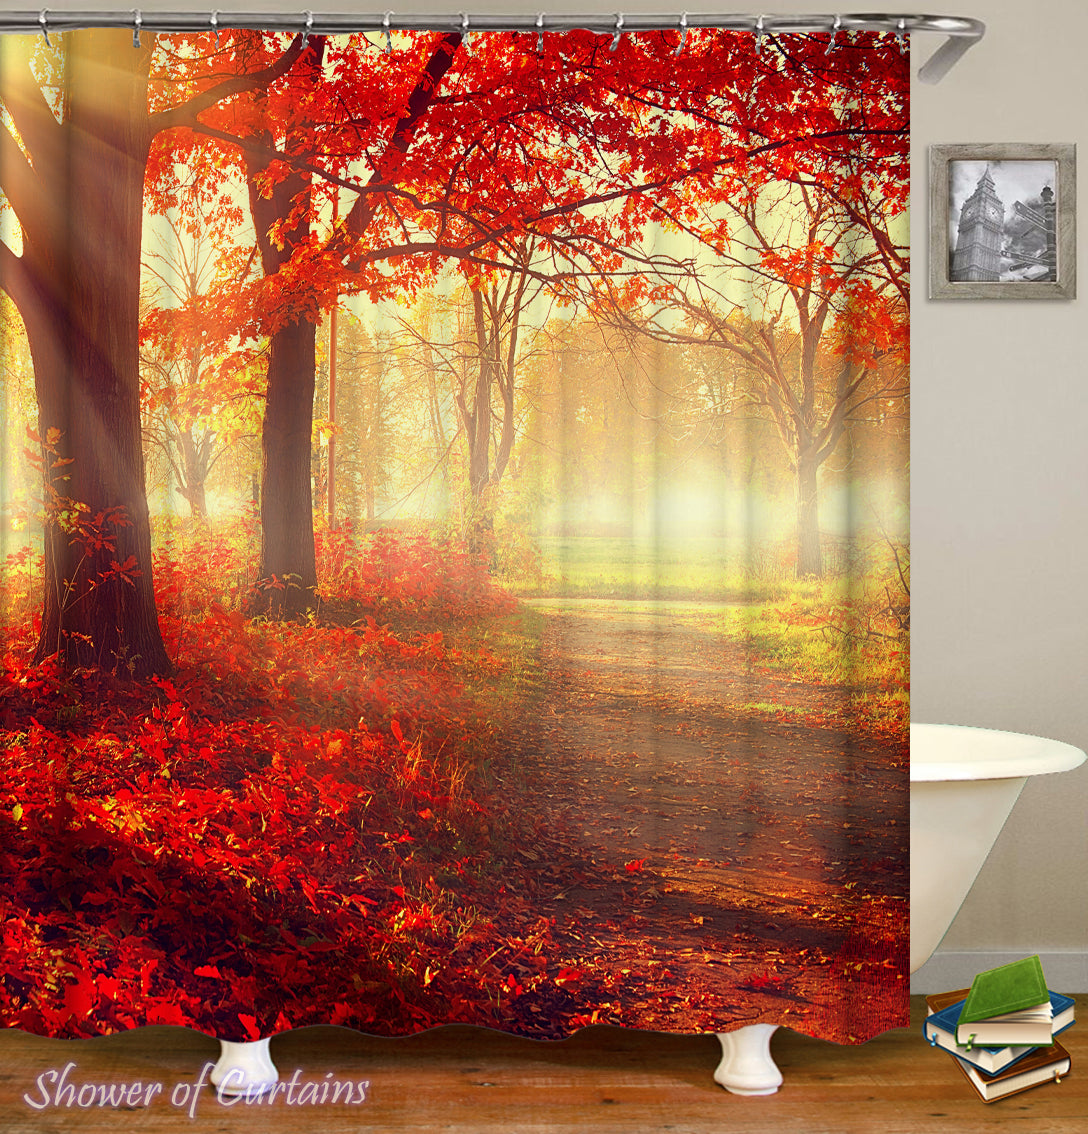 Shower Curtains | Sunset In The Autumn – Shower of Curtains